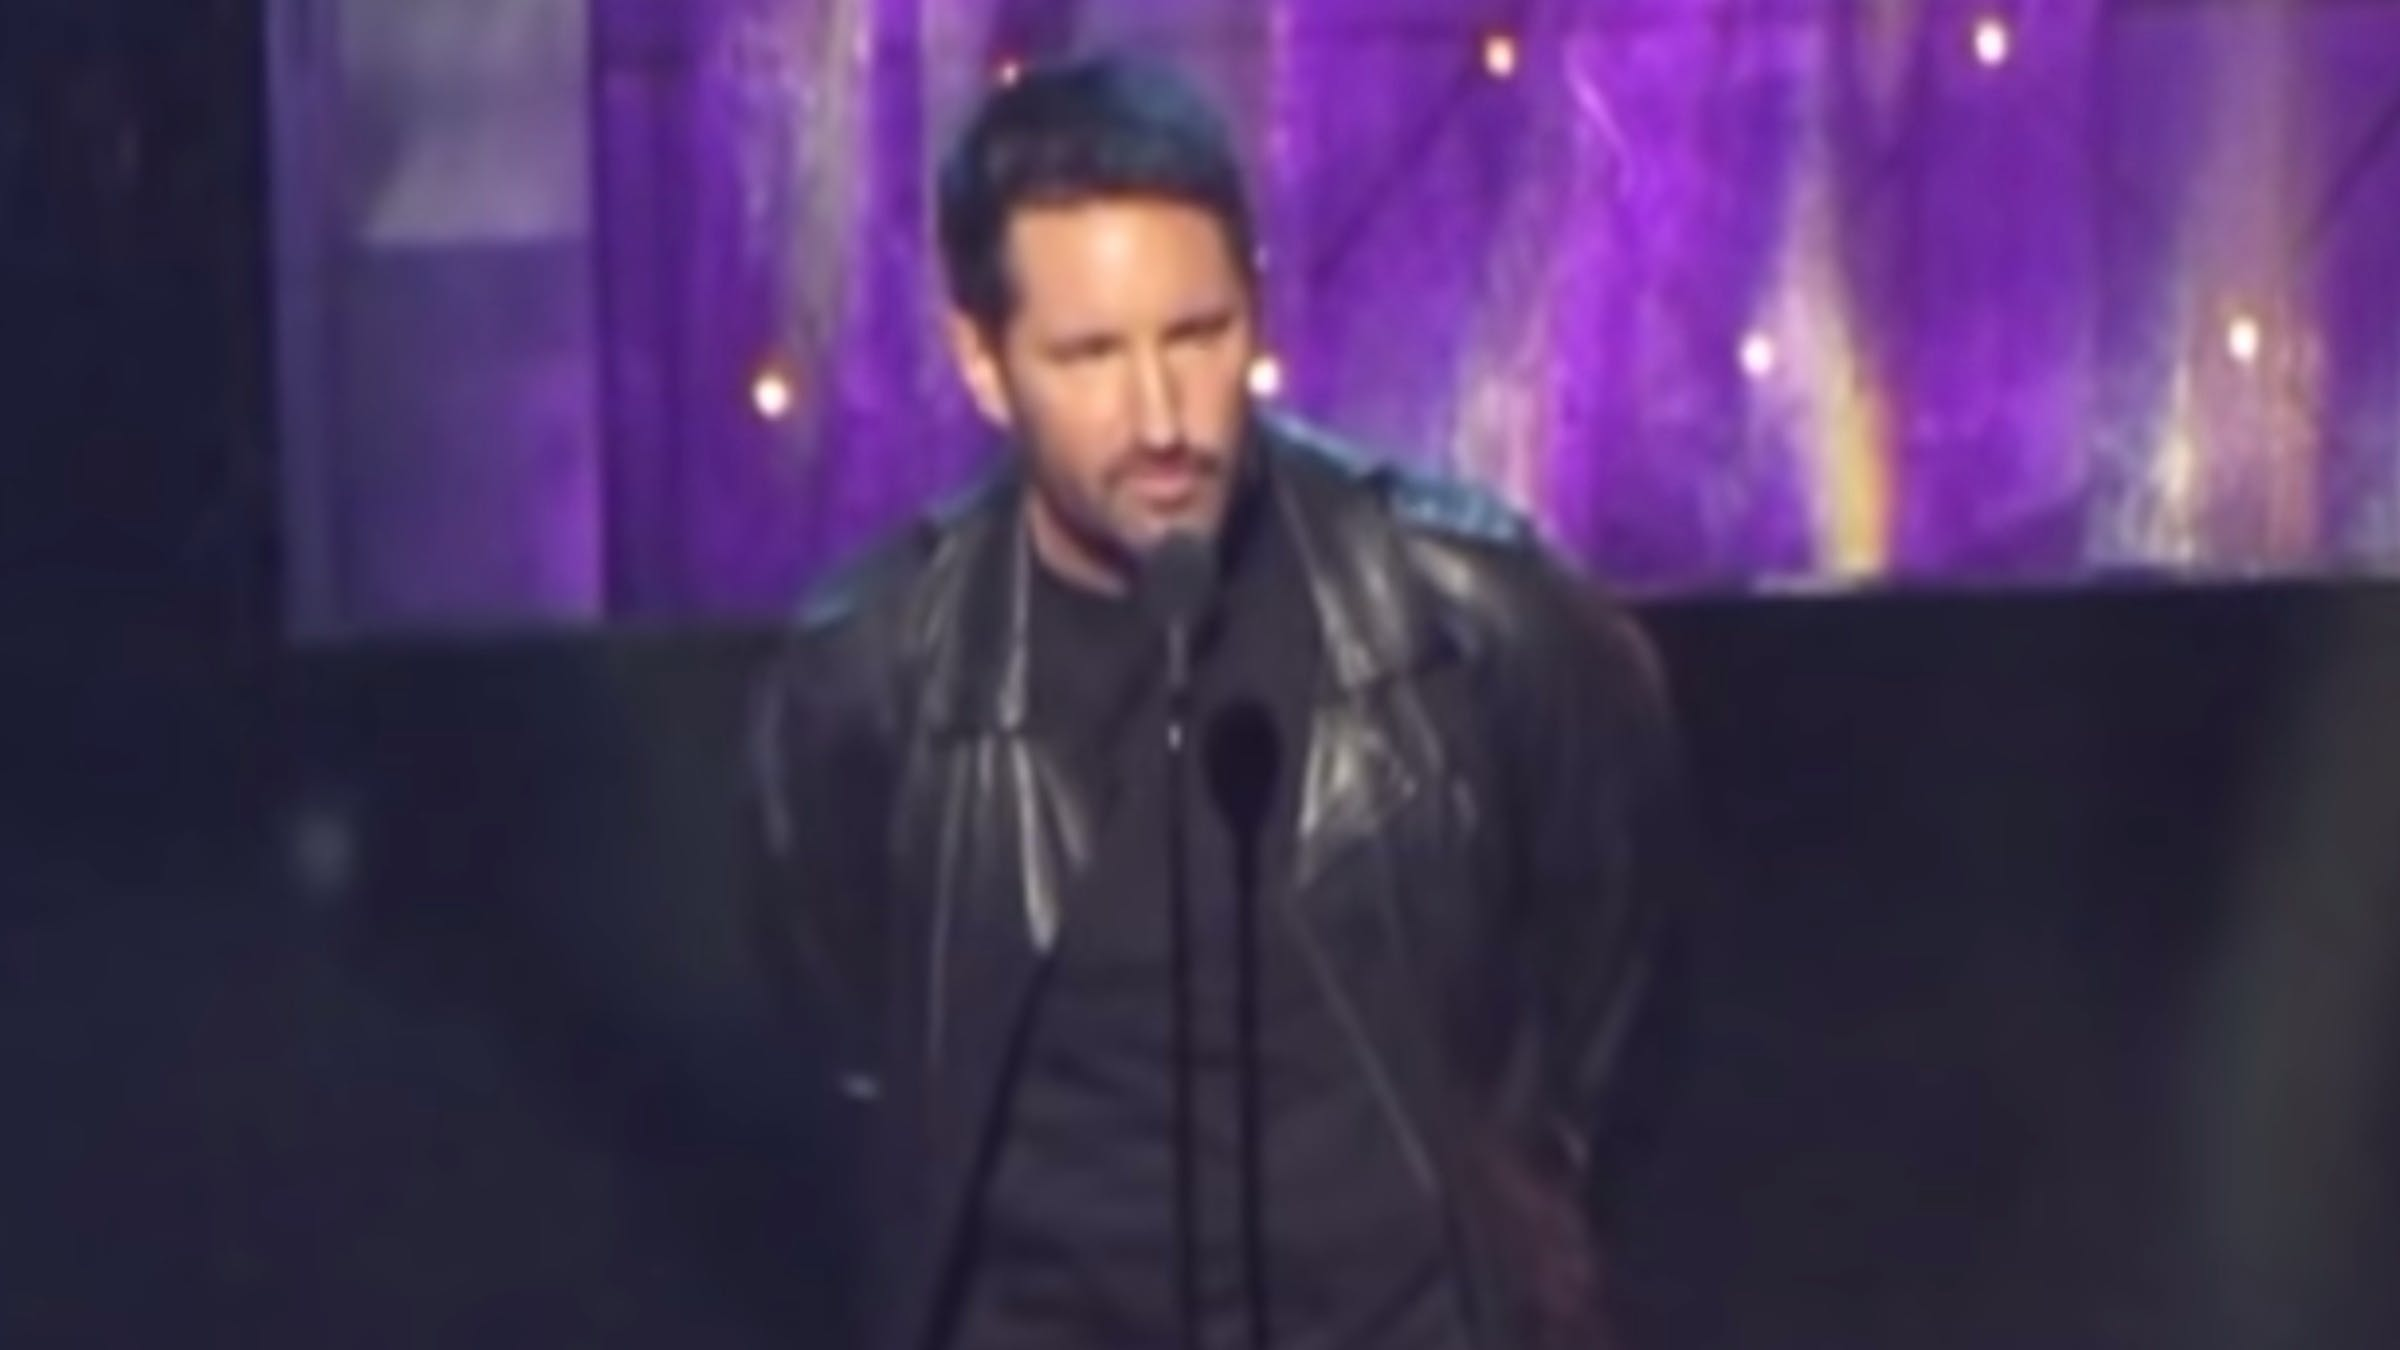 Here's Trent Reznor's Speech Inducting The Cure Into The Rock & Roll Hall Of Fame